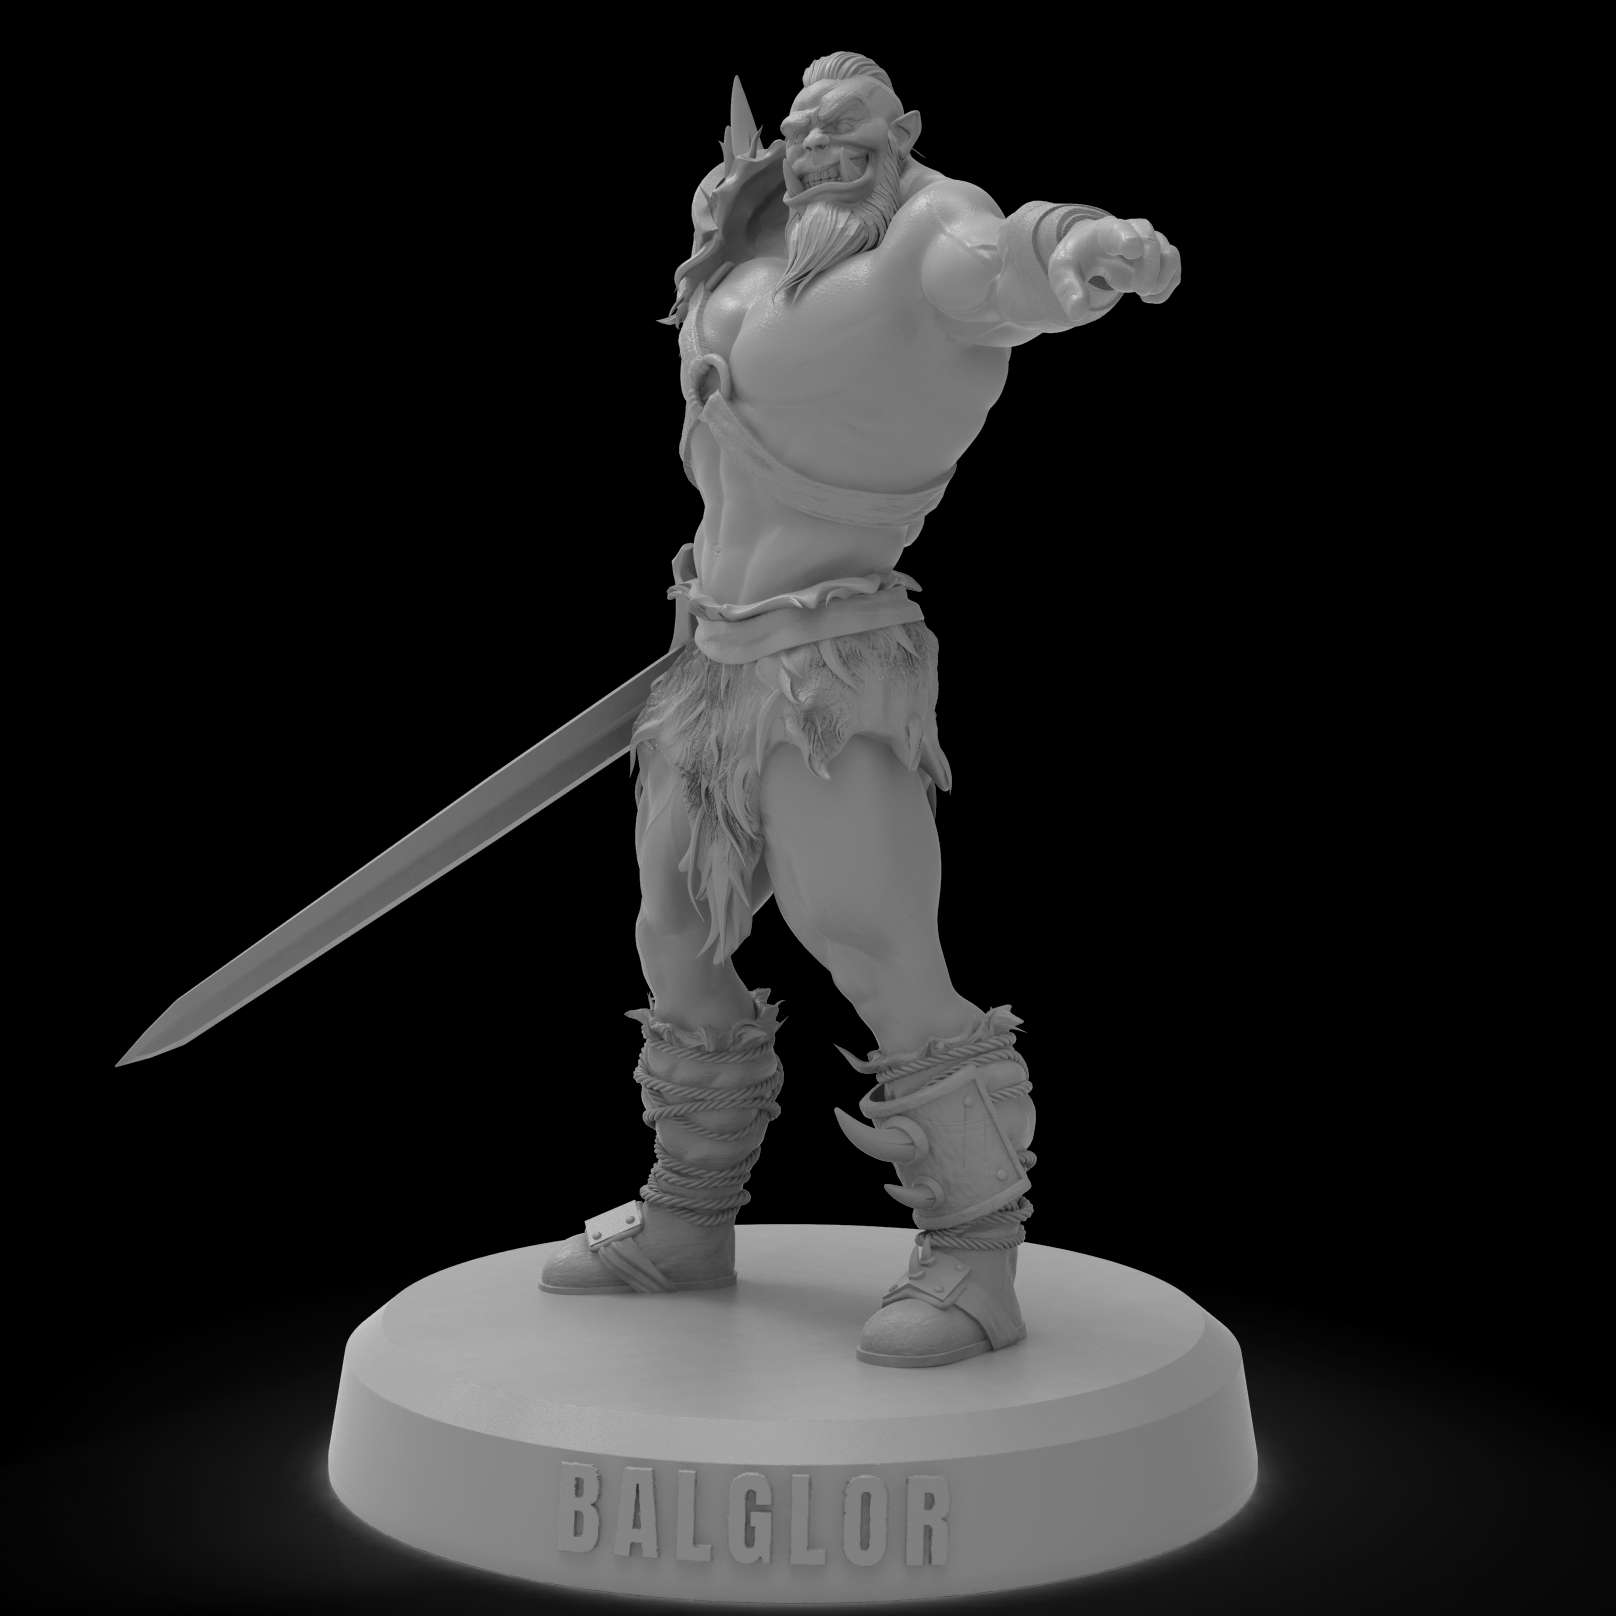 Orc Balglo - Scale 1:8 25cm tall, 2 pose models included - The best files for 3D printing in the world. Stl models divided into parts to facilitate 3D printing. All kinds of characters, decoration, cosplay, prosthetics, pieces. Quality in 3D printing. Affordable 3D models. Low cost. Collective purchases of 3D files.